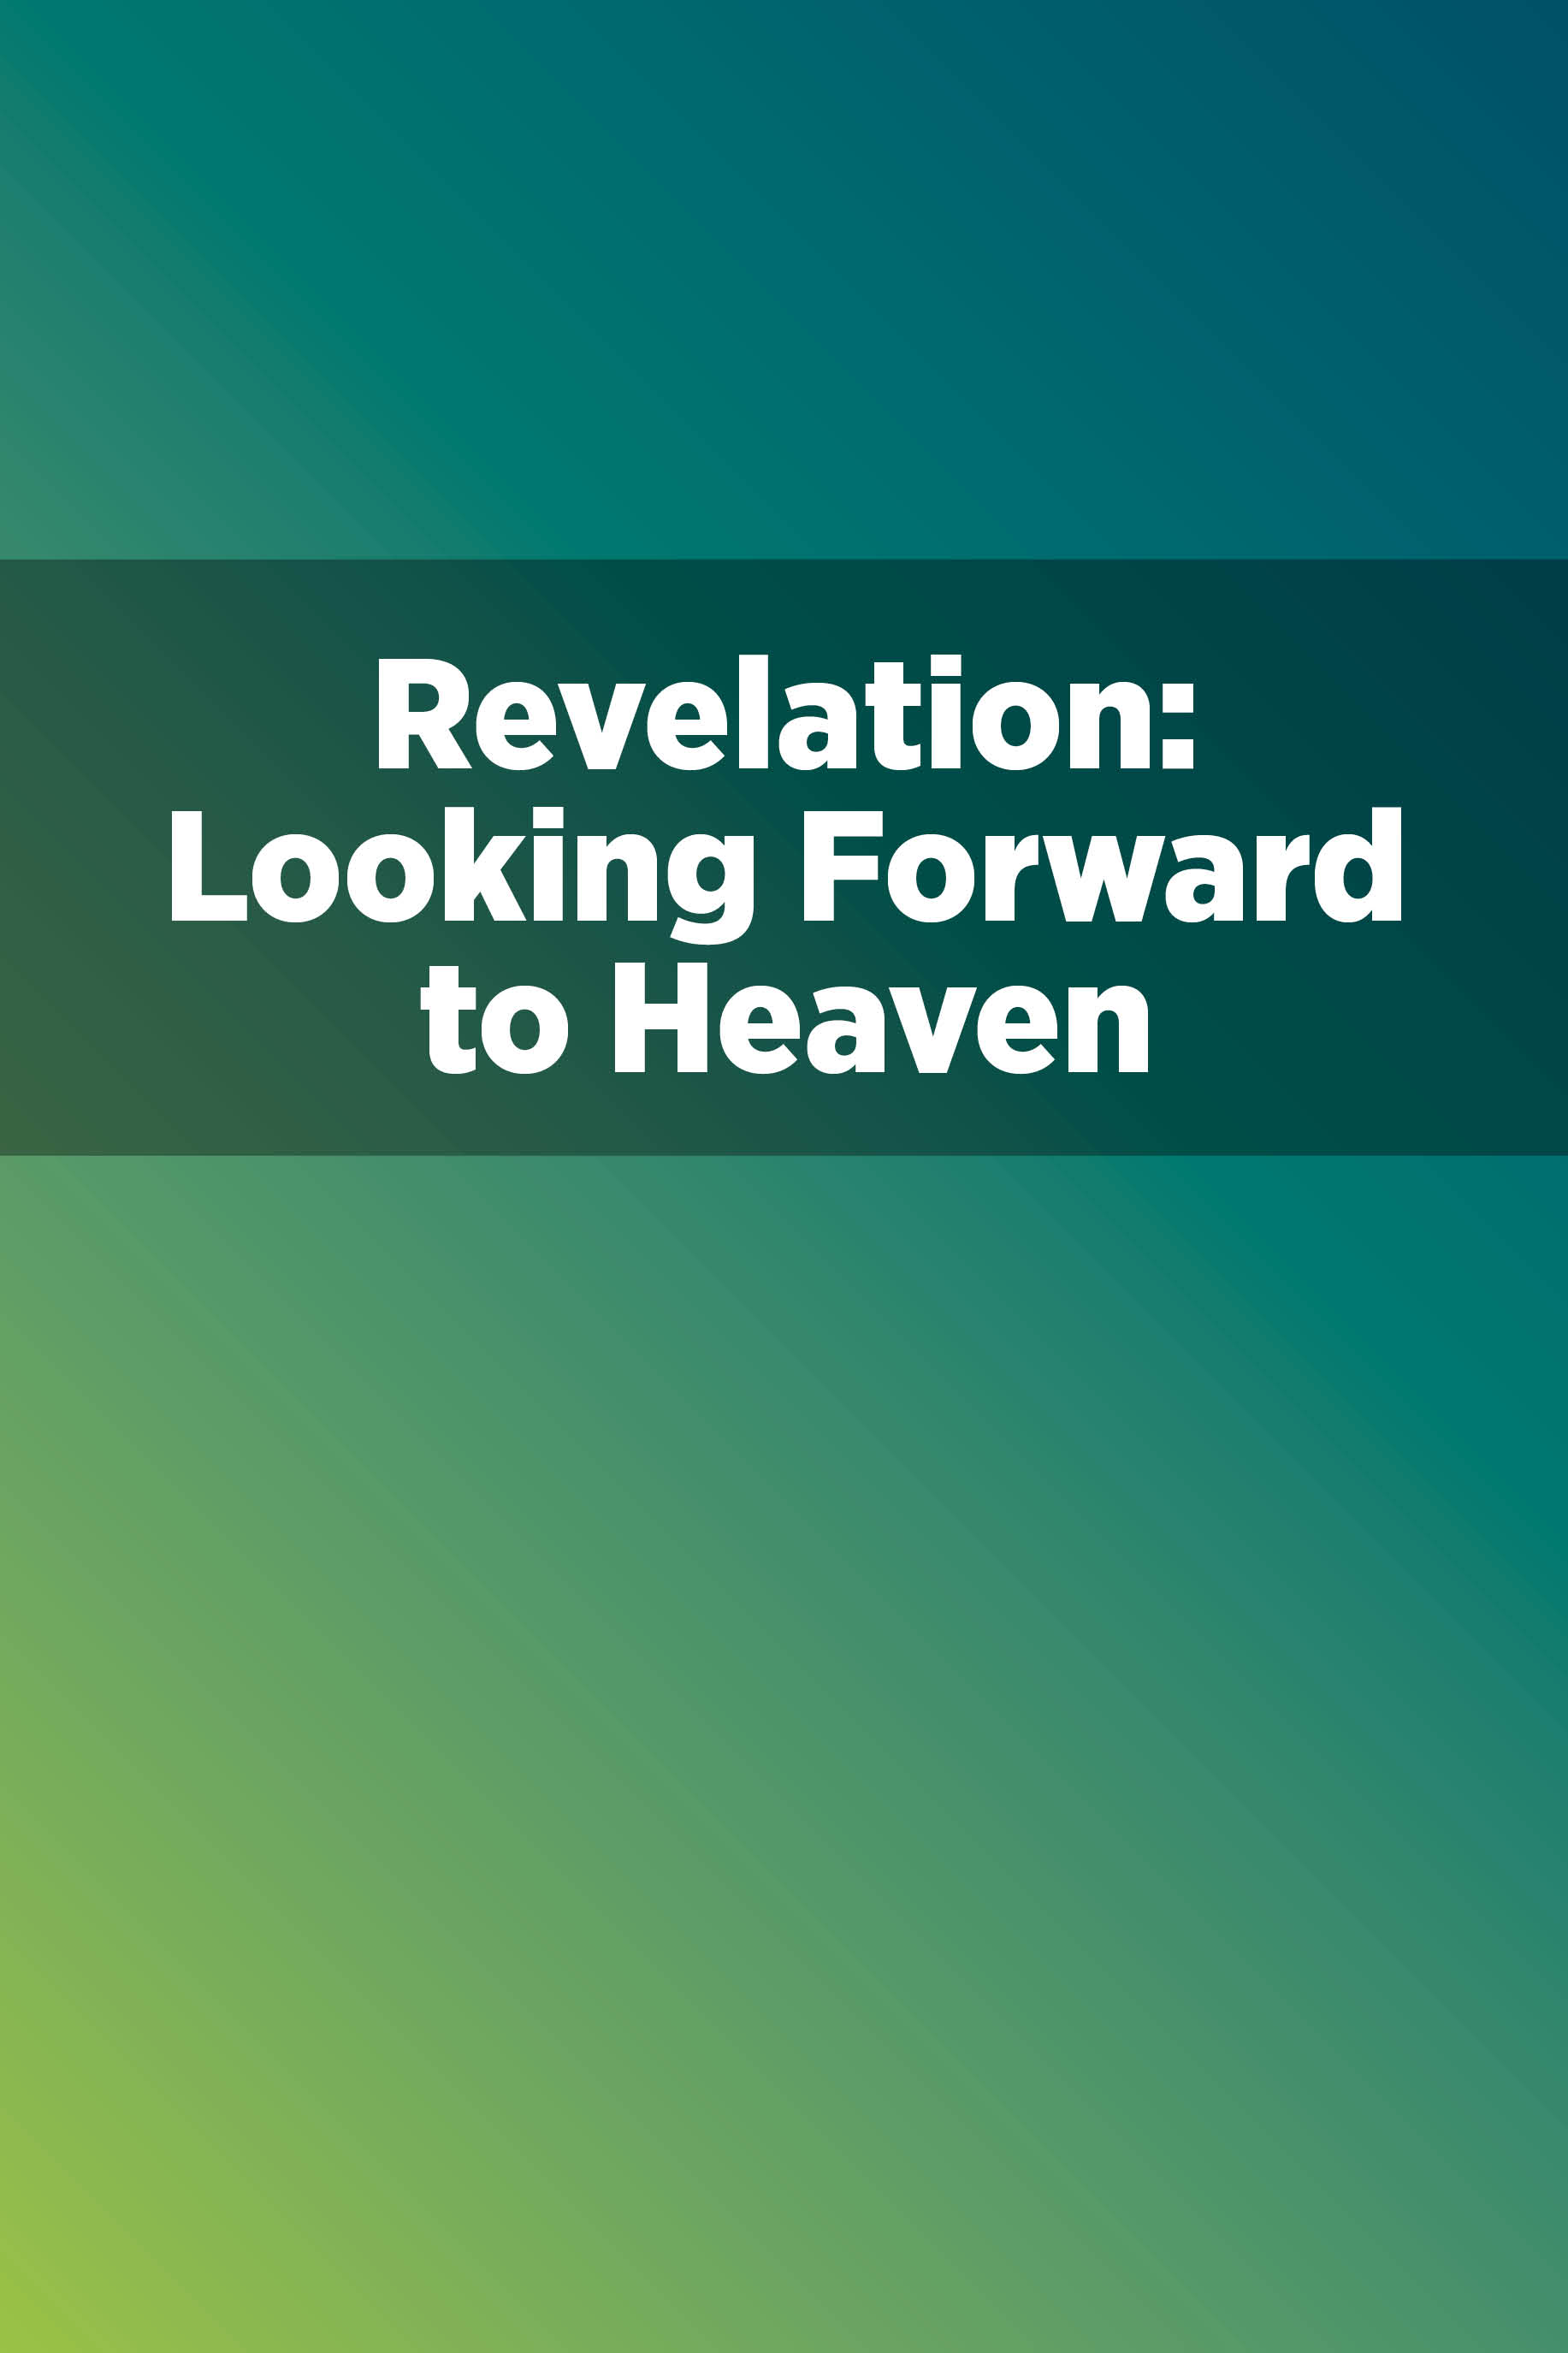 Revelation: Looking Forward to Heaven